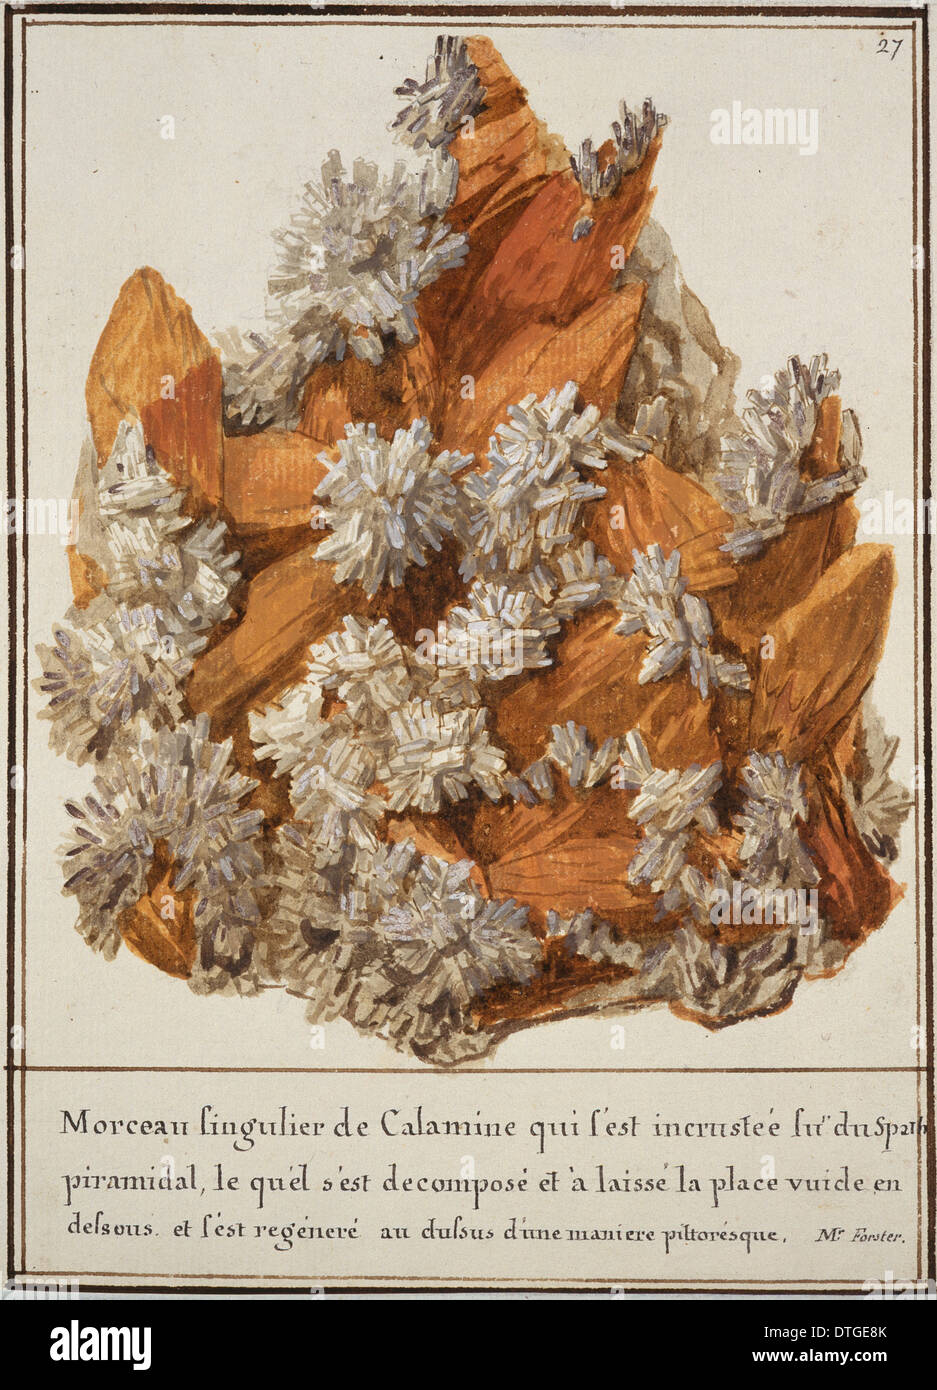 Plate 27 from Mineralogie Volume 1 (1790) by Swebach Desfontaines - Stock Image